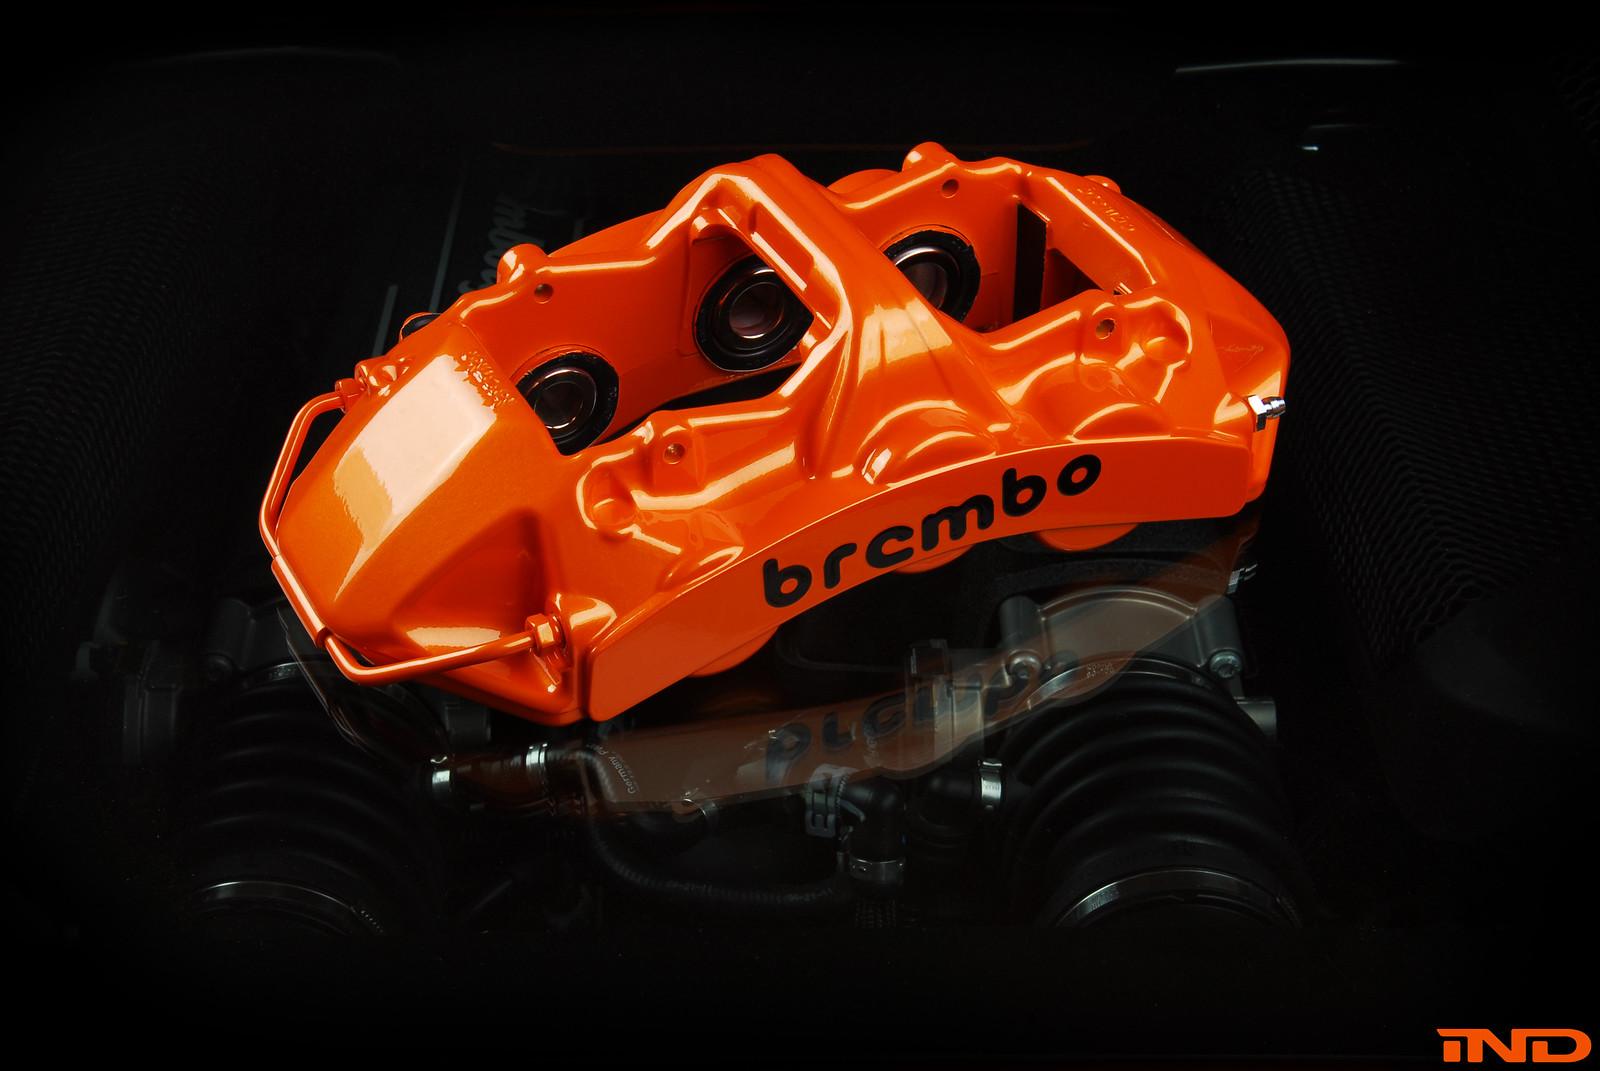 IND | Brand new Brembo F8x M3 and M4 kits! - BMW M3 and BMW